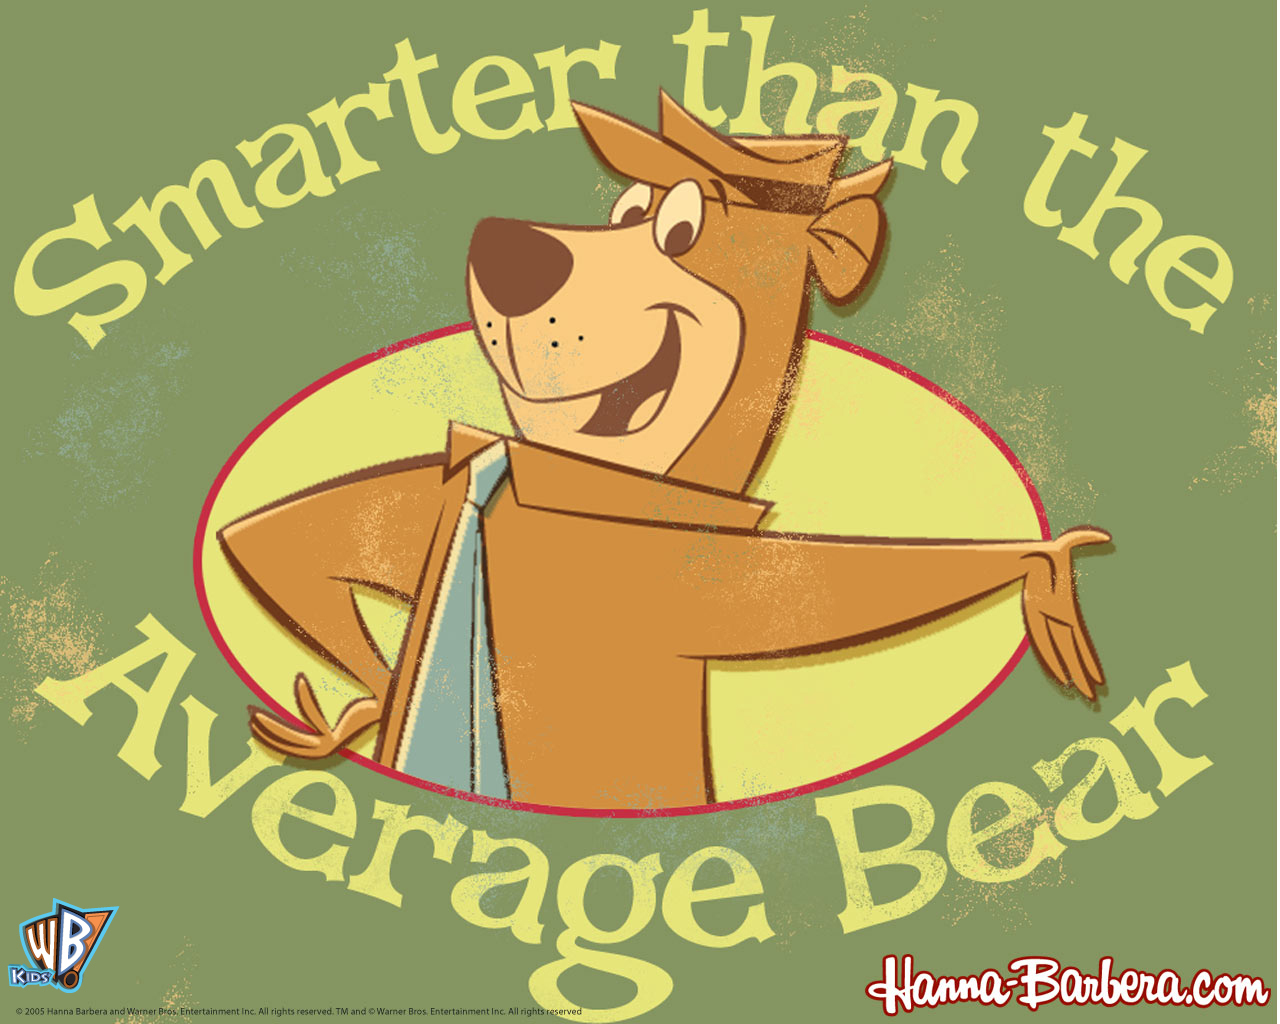 The-Huckleberry-Hound-Show-yogi-the-Huckleberry-Hound-Show-Fanpop-wallpaper-wp46010705-2